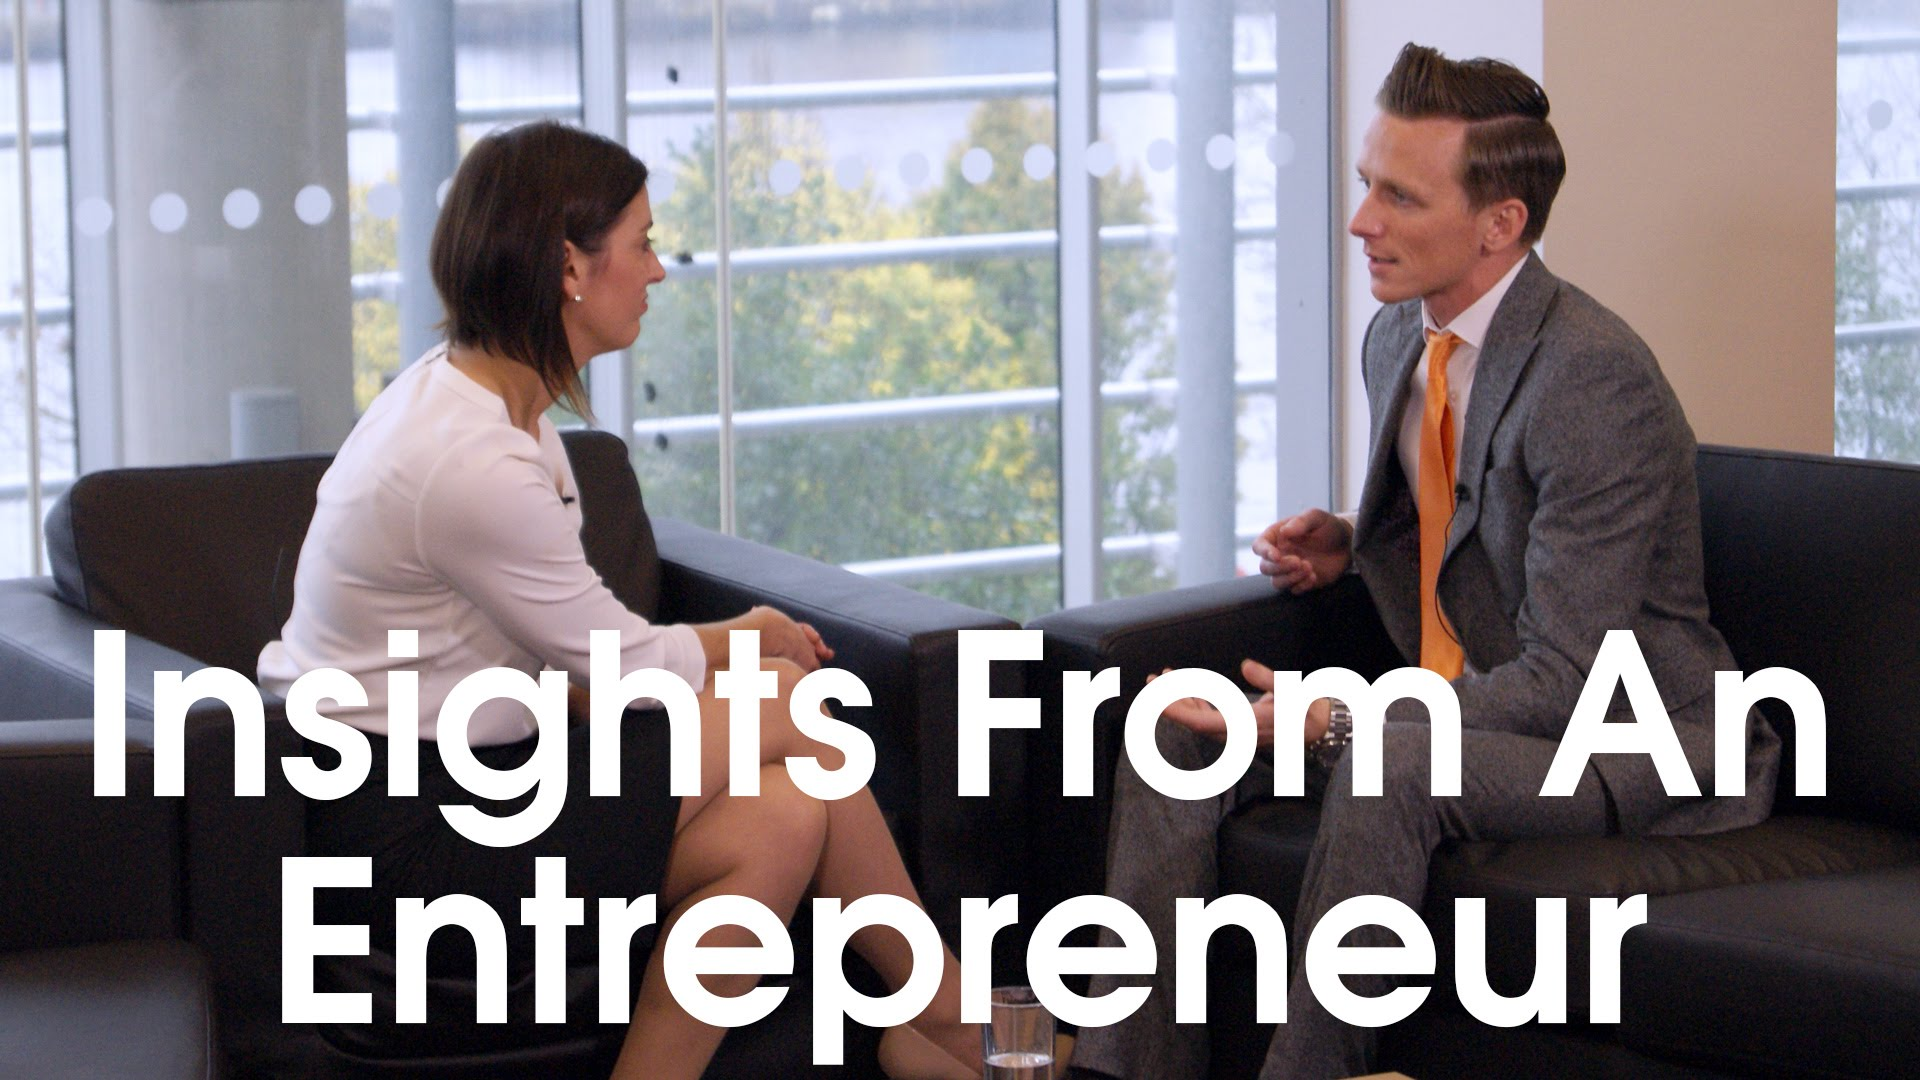 William Almonte - 7 Insights on Being an Entrepreneur